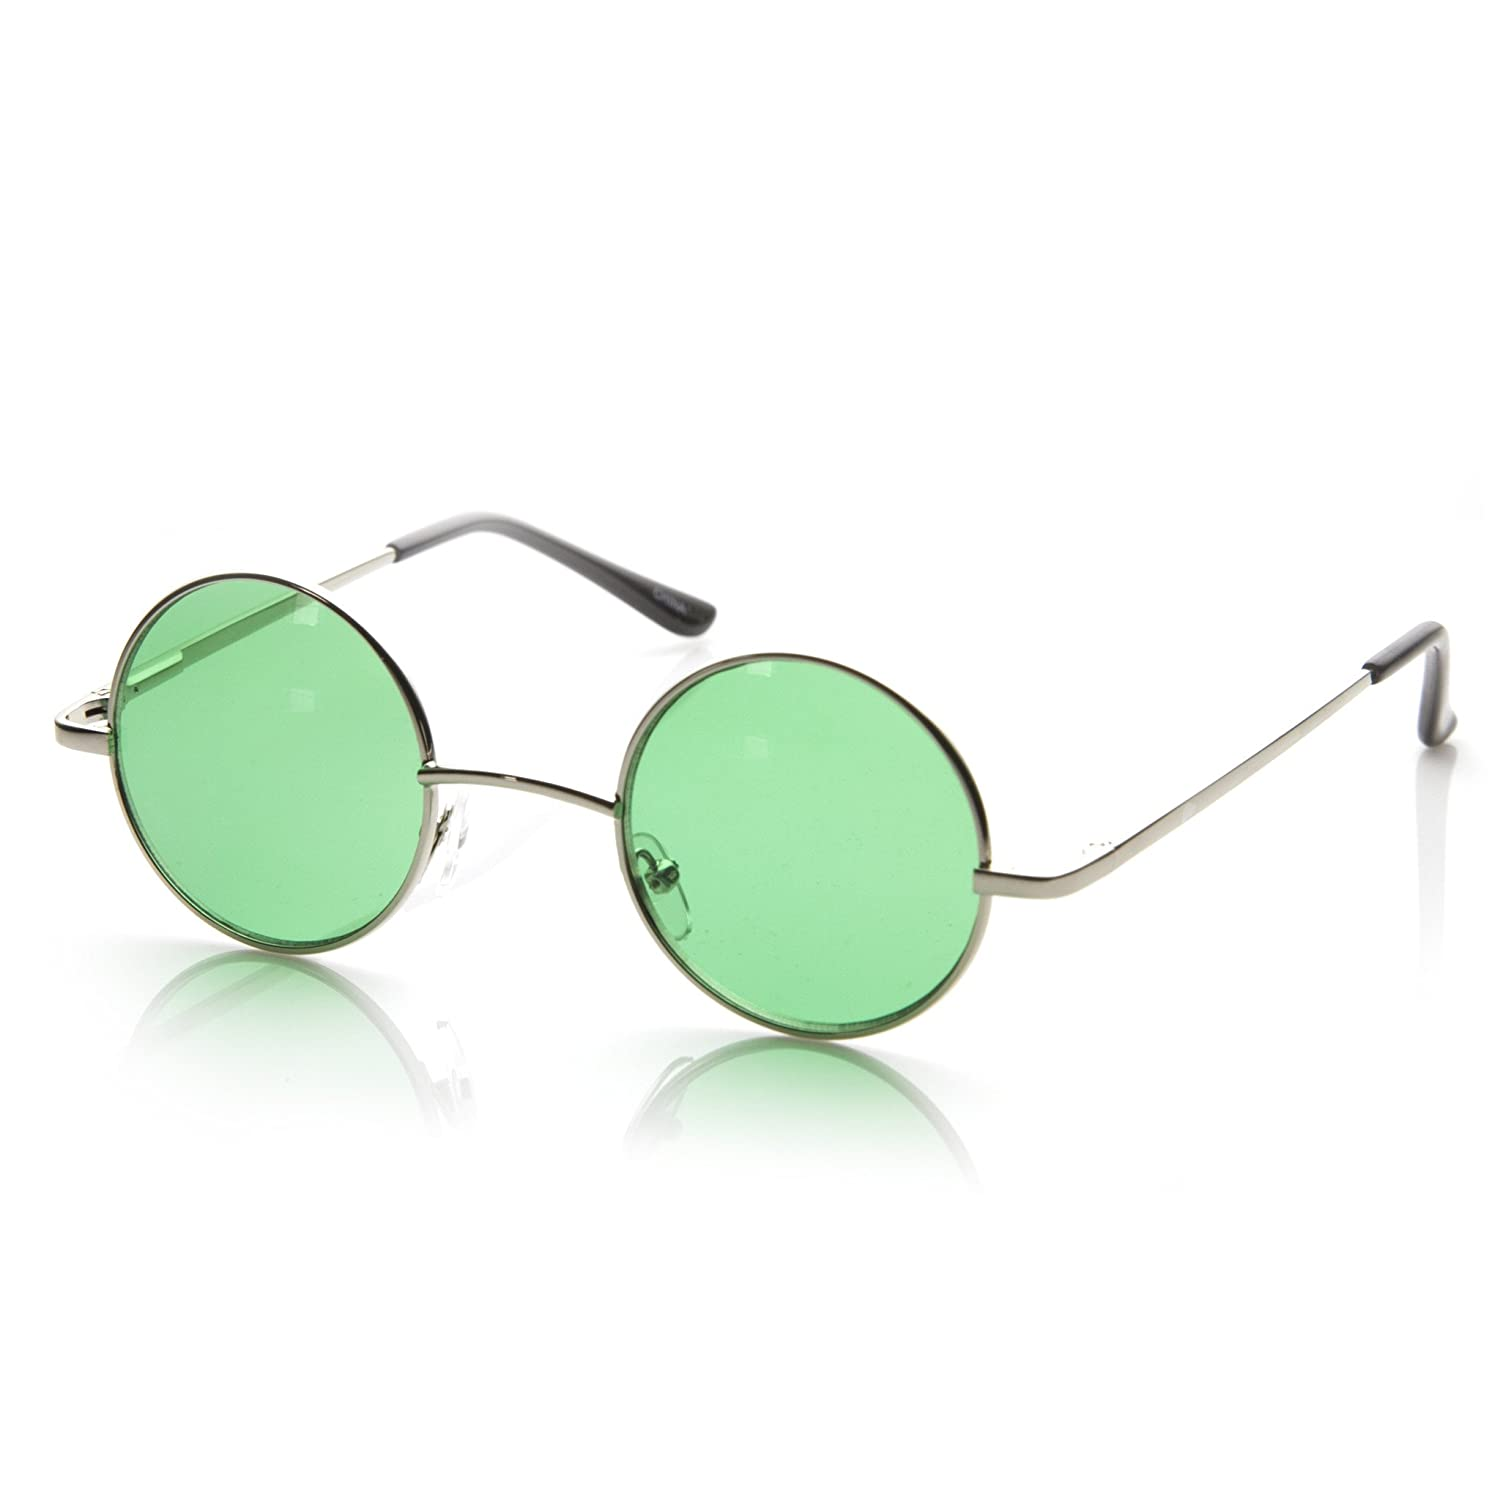 Hipster Fashion Small Metal Round Circle Ozzy Elton Color Tint Lennon Style Sunglasses Green) MLC Eyewear 7133